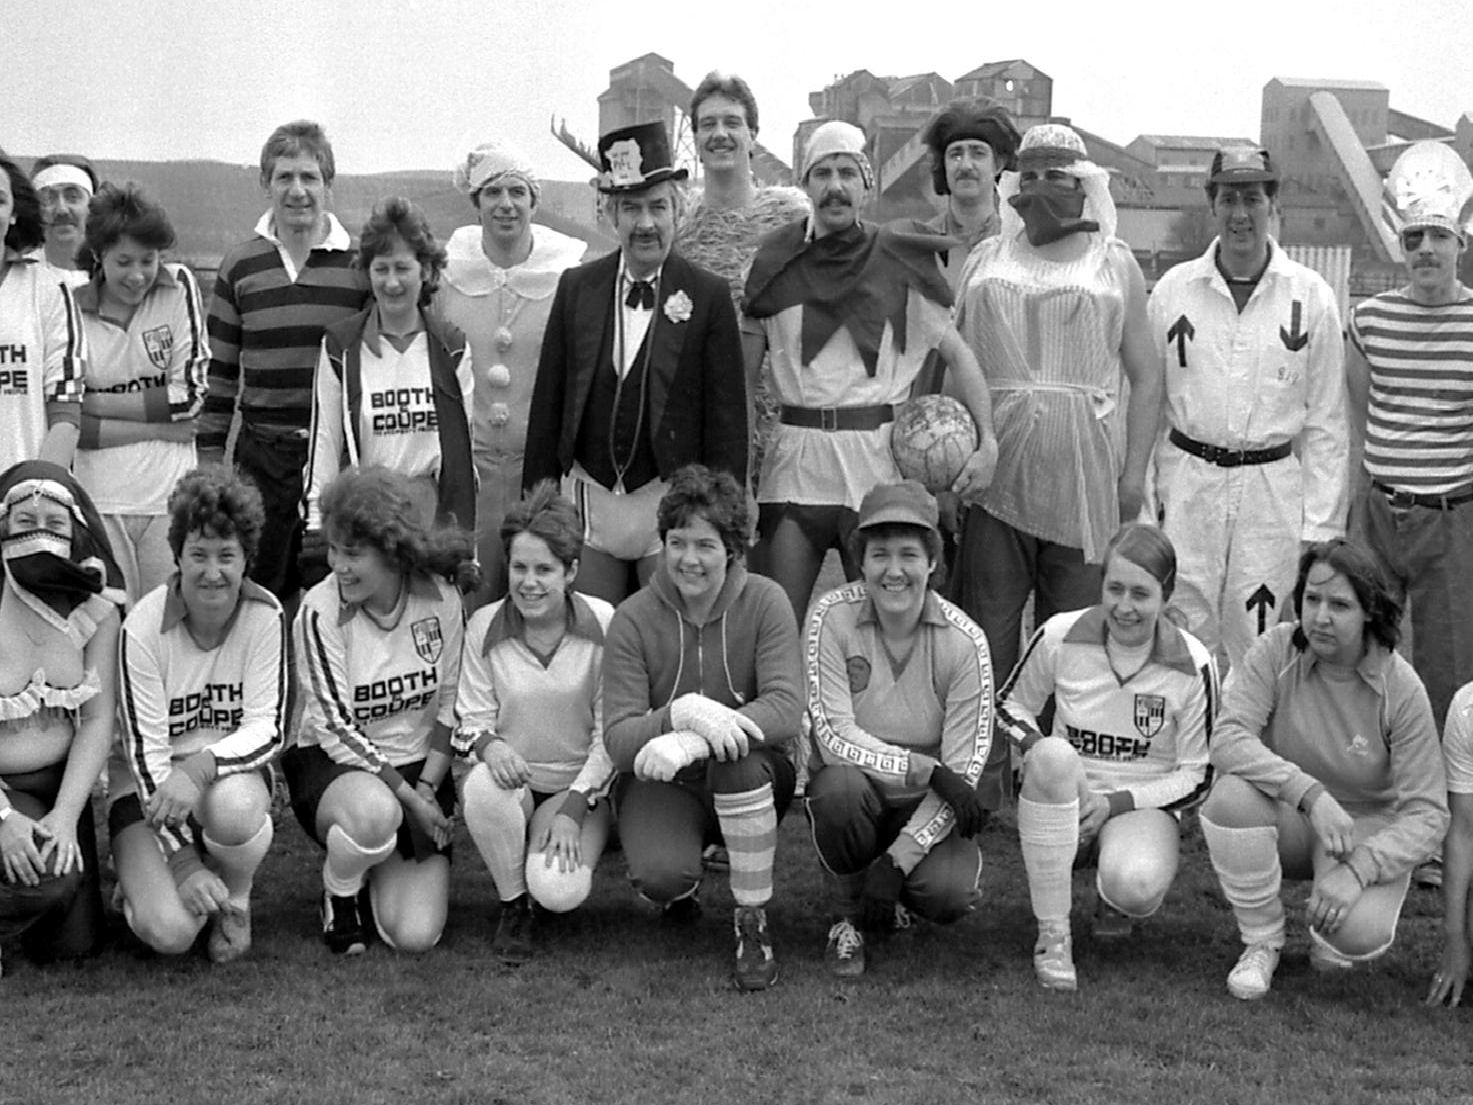 1985: Firemen and ladies from Blidworth go head to head in a charity football match. Are you on this picture?